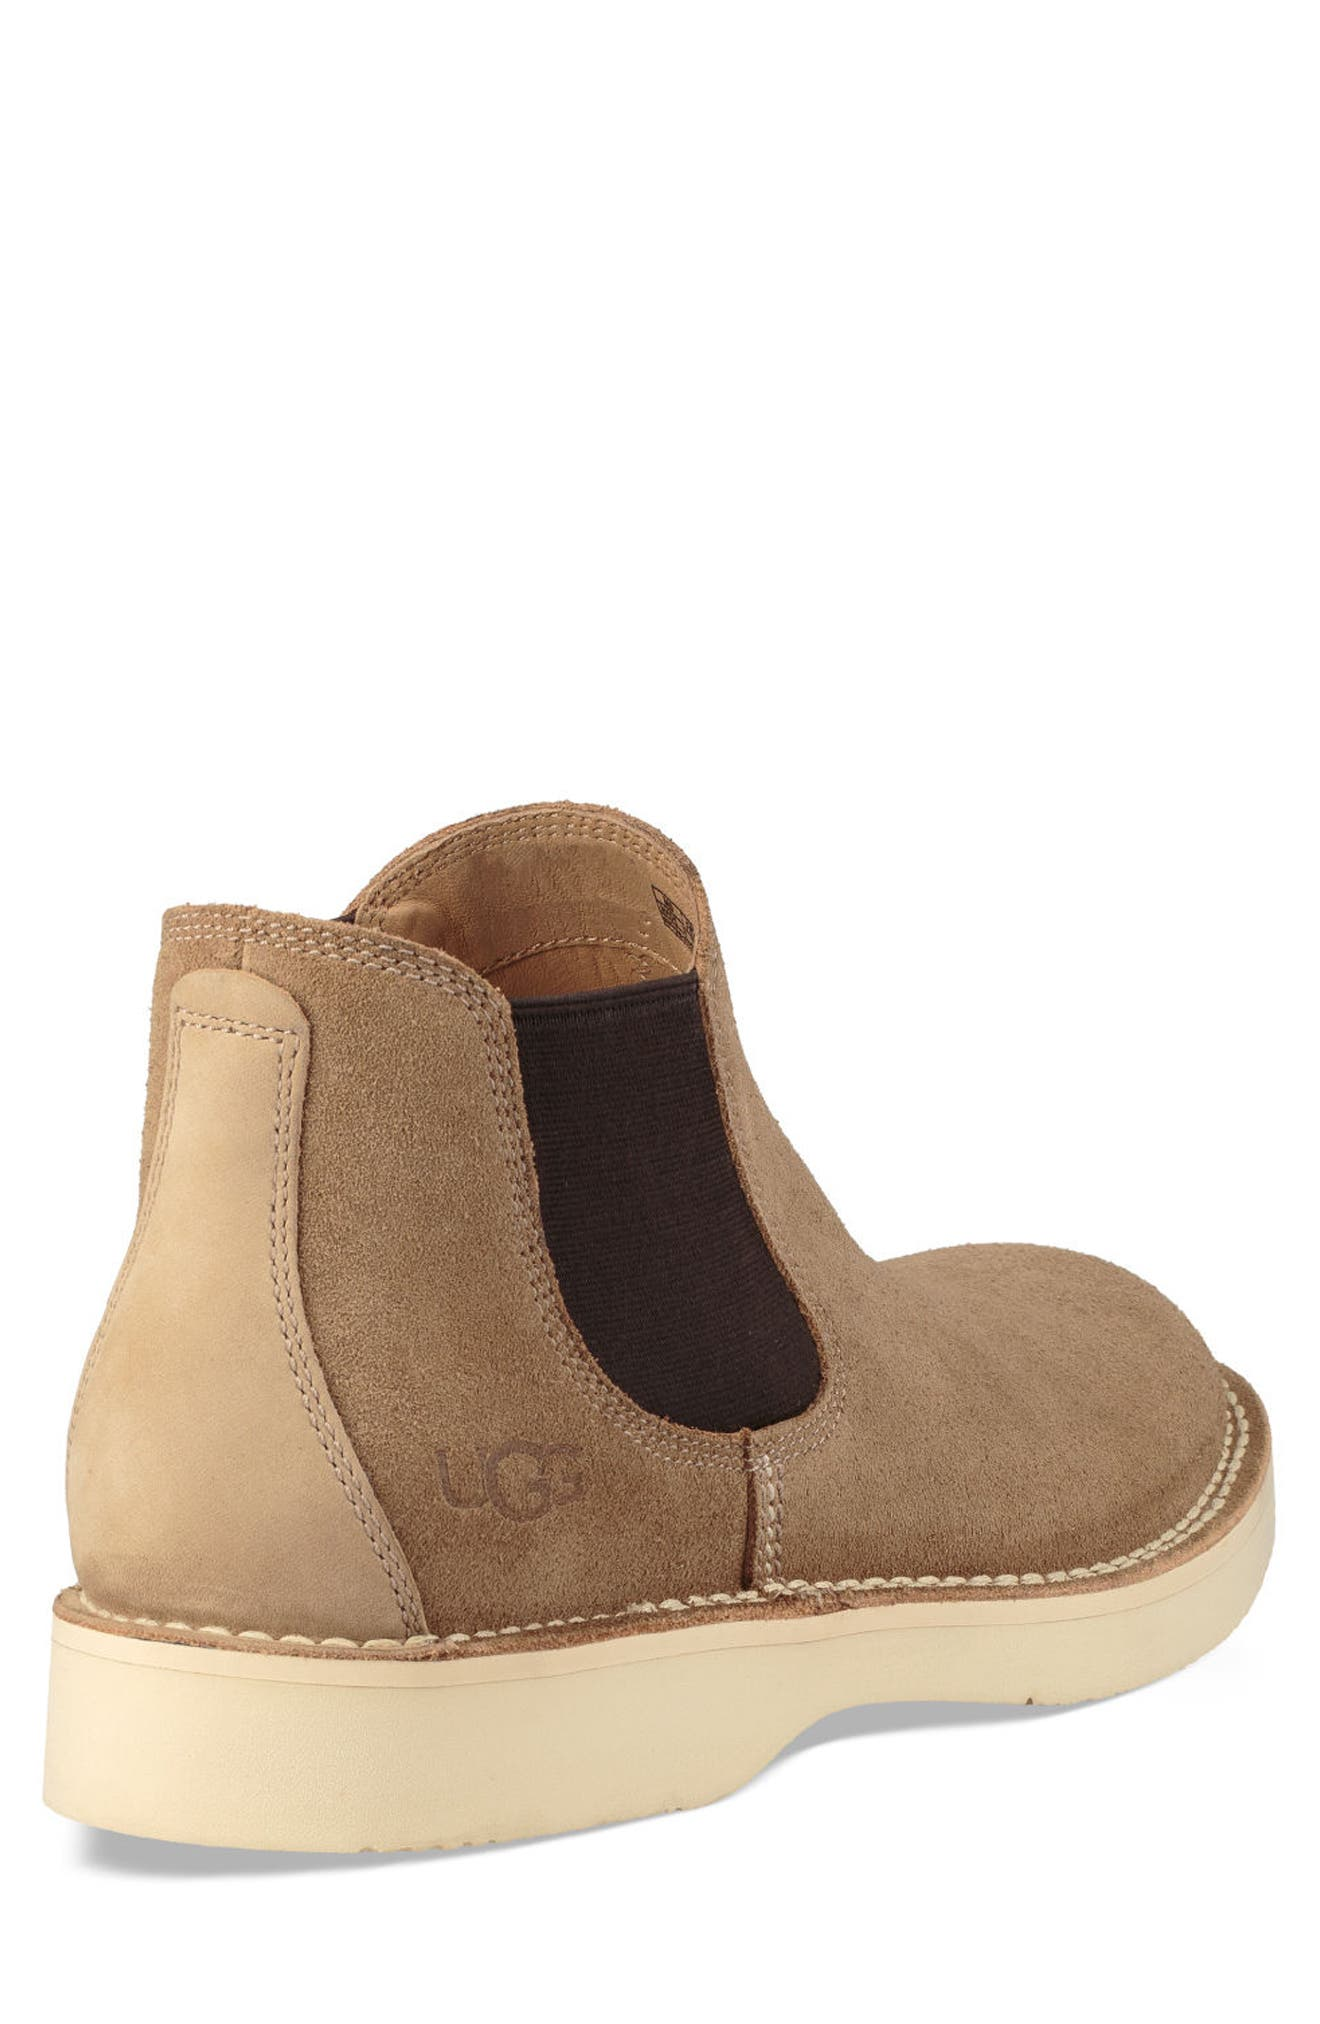 UGG<SUP>®</SUP>, Camino Chelsea Boot, Alternate thumbnail 2, color, DESERT TAN